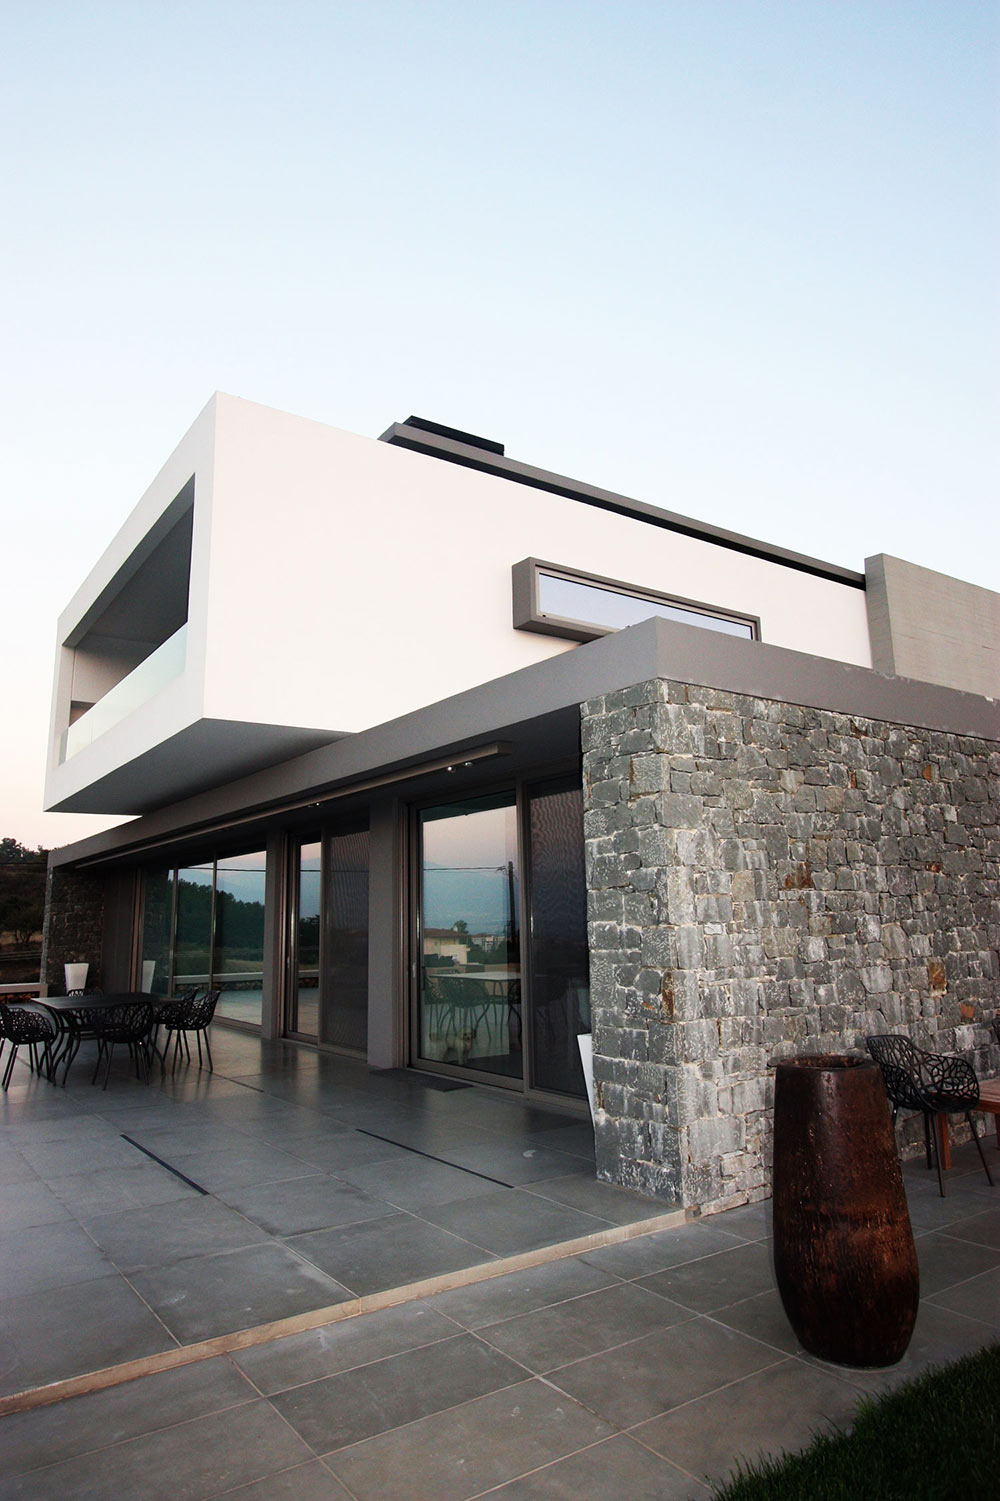 Terrace, Stone Wall, Hilltop Home in Thessaloniki, Greece by Office 25 Architects